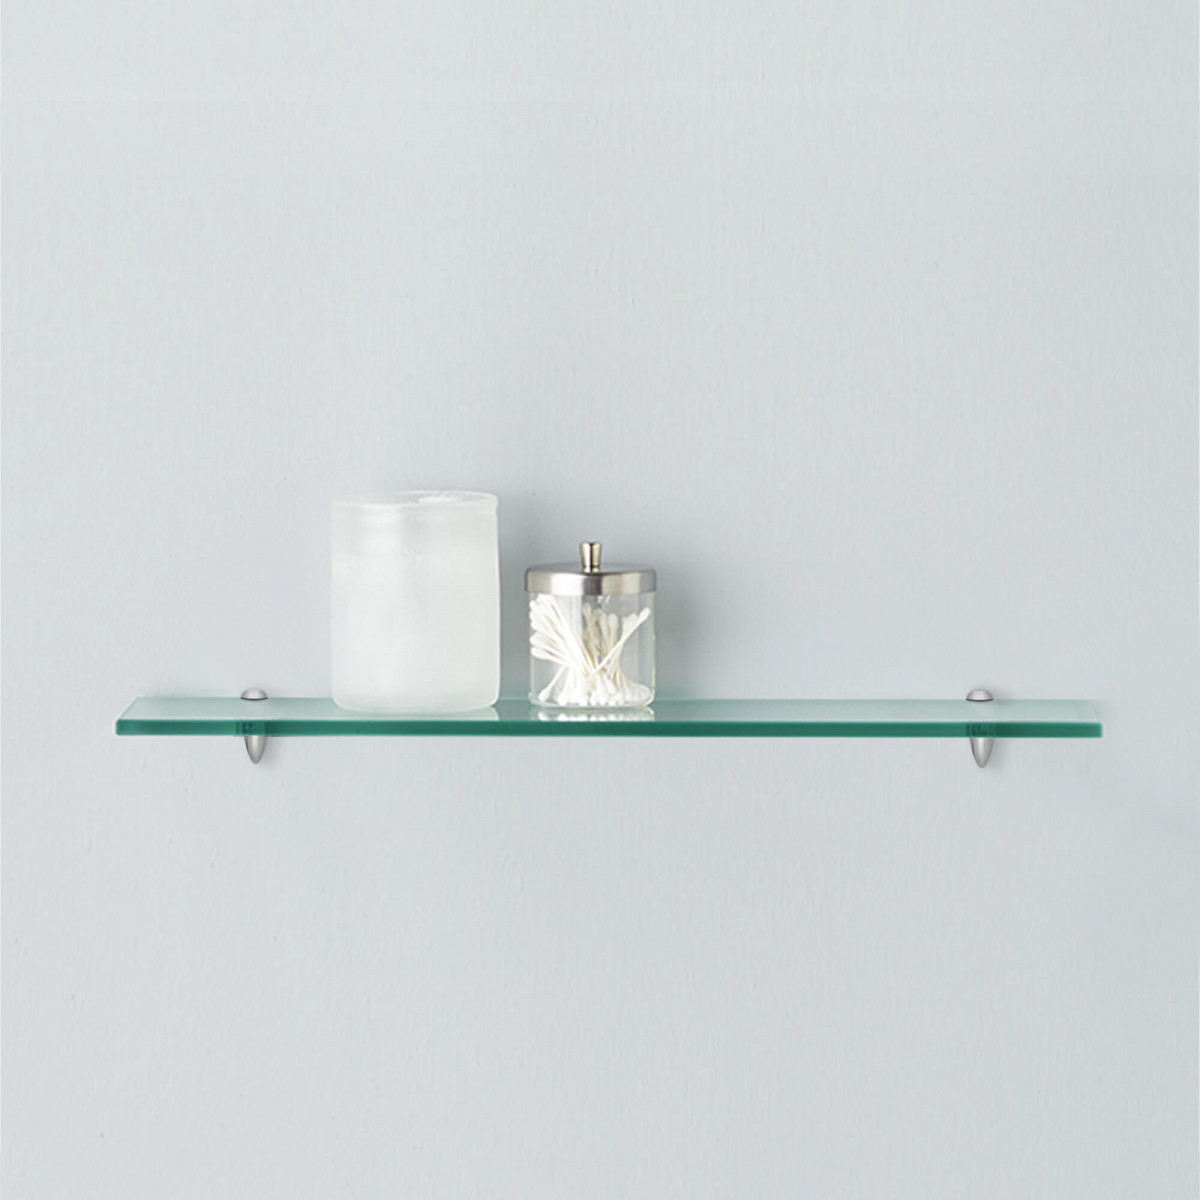 rectangle floating glass shelf kit inch long wood wall shelving brackets canadian tire bunnings cube bookshelf hooks without drilling vanity ideas roll around kitchen cart throws